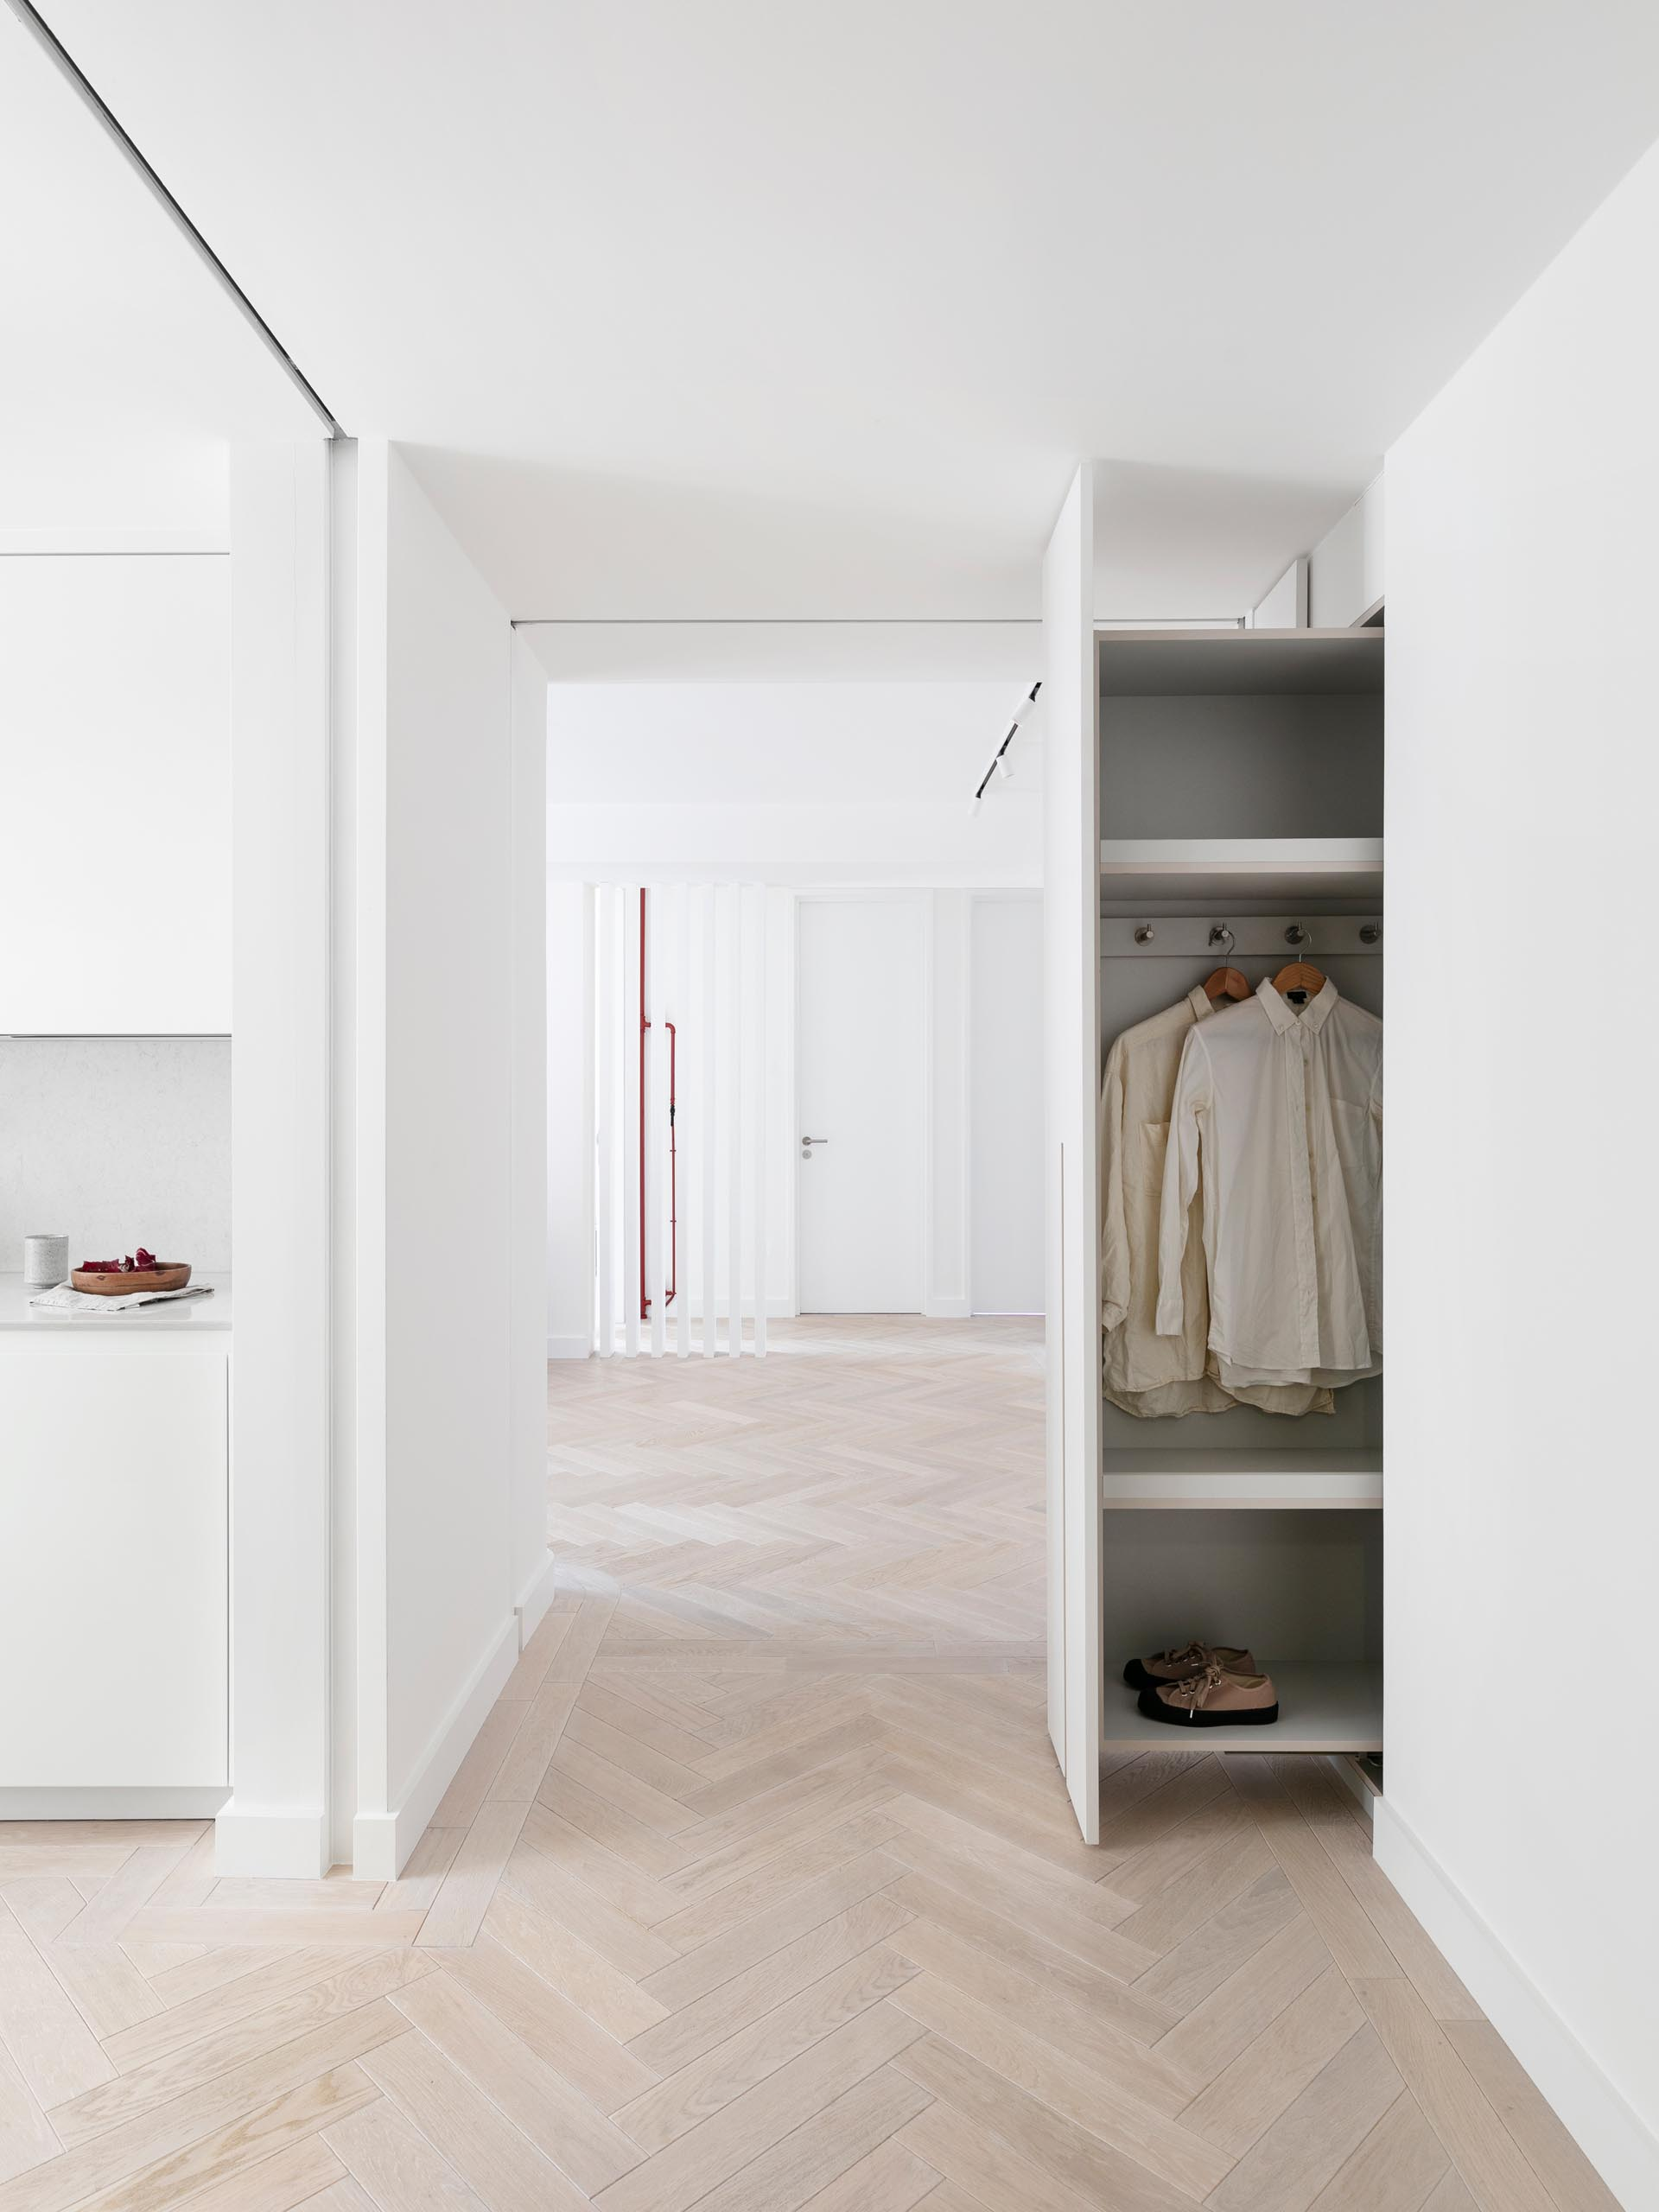 This modern entry hallway has a wall of cabinets that can be pulled out to reveal coat hangers and shoe storage.